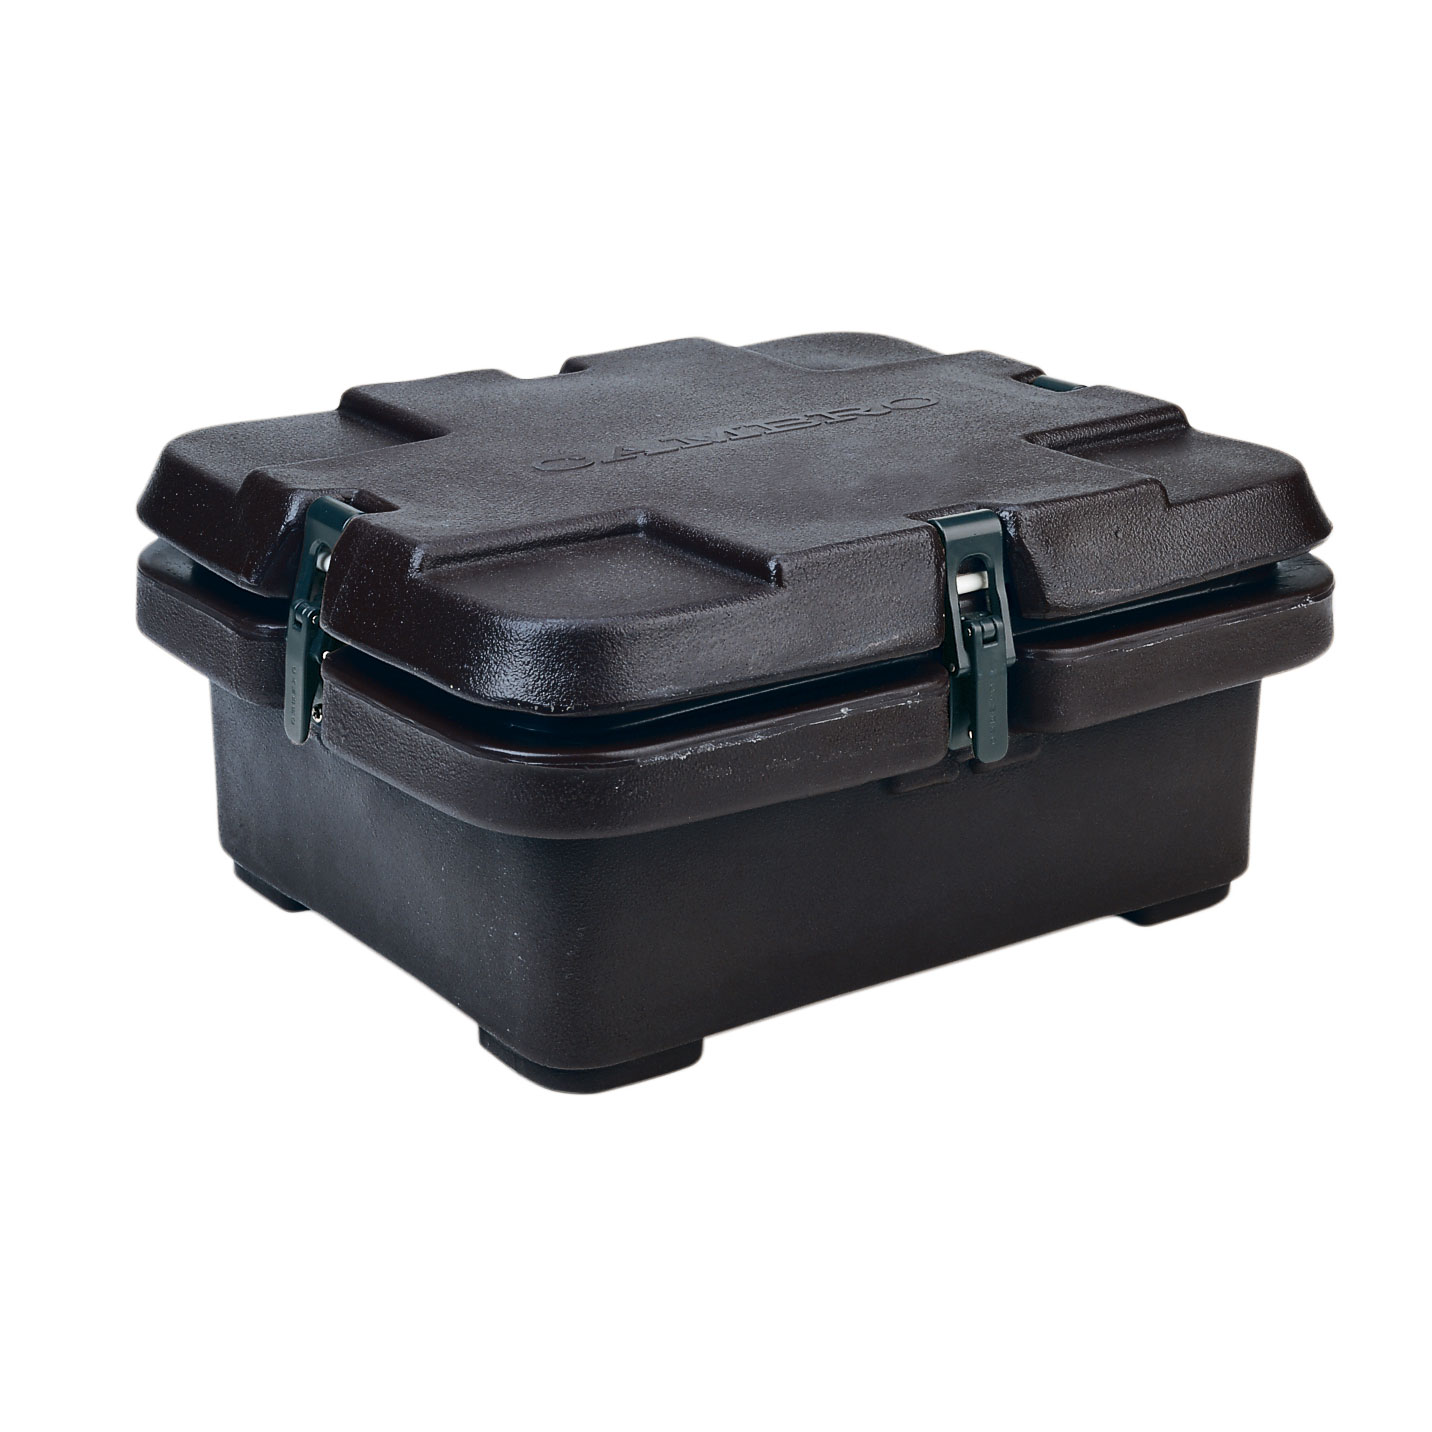 Cambro 240MPC110 food carrier, insulated plastic